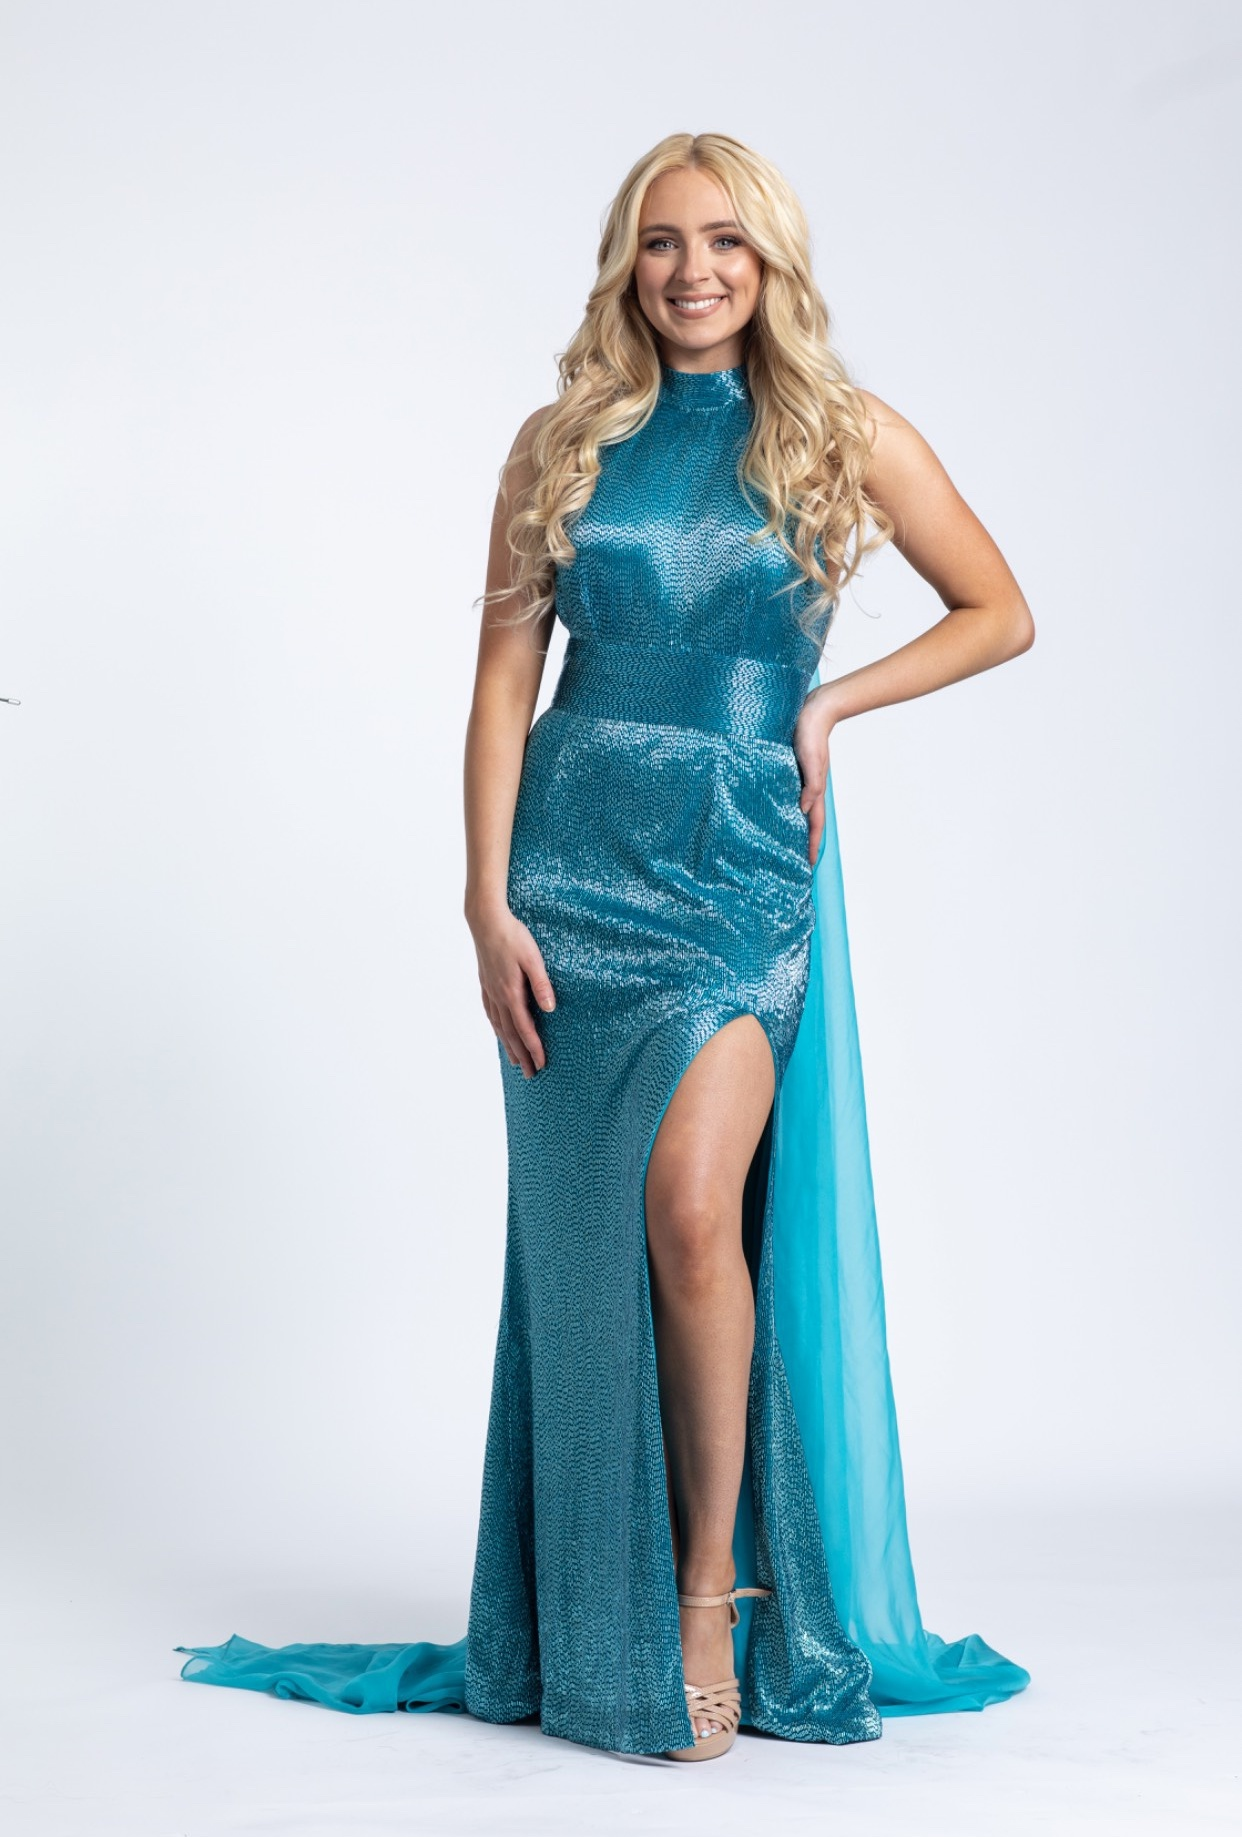 Ashley Lauren Blue Size 2 Shiny Cape Straight Dress on Queenly